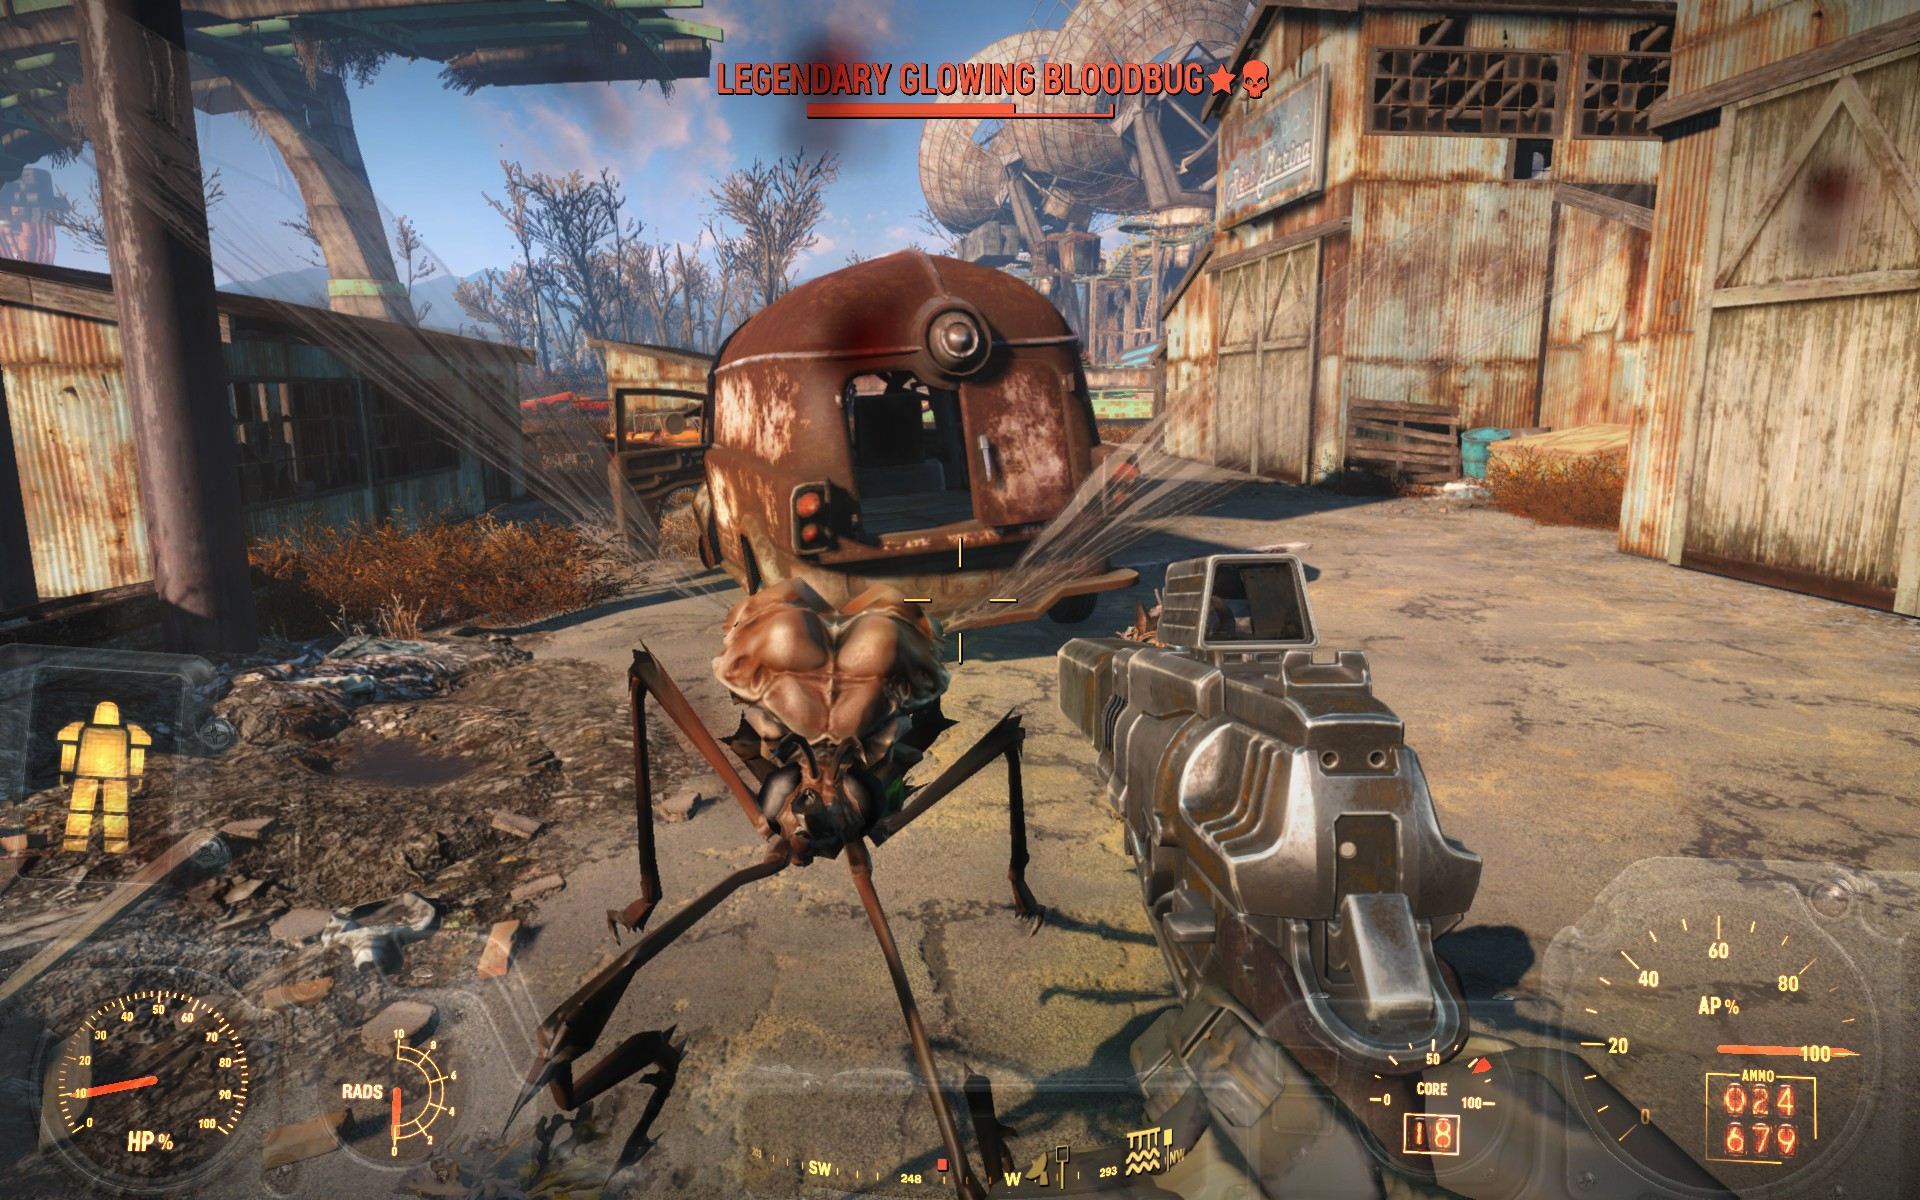 fallout 4 survival guide pdf download